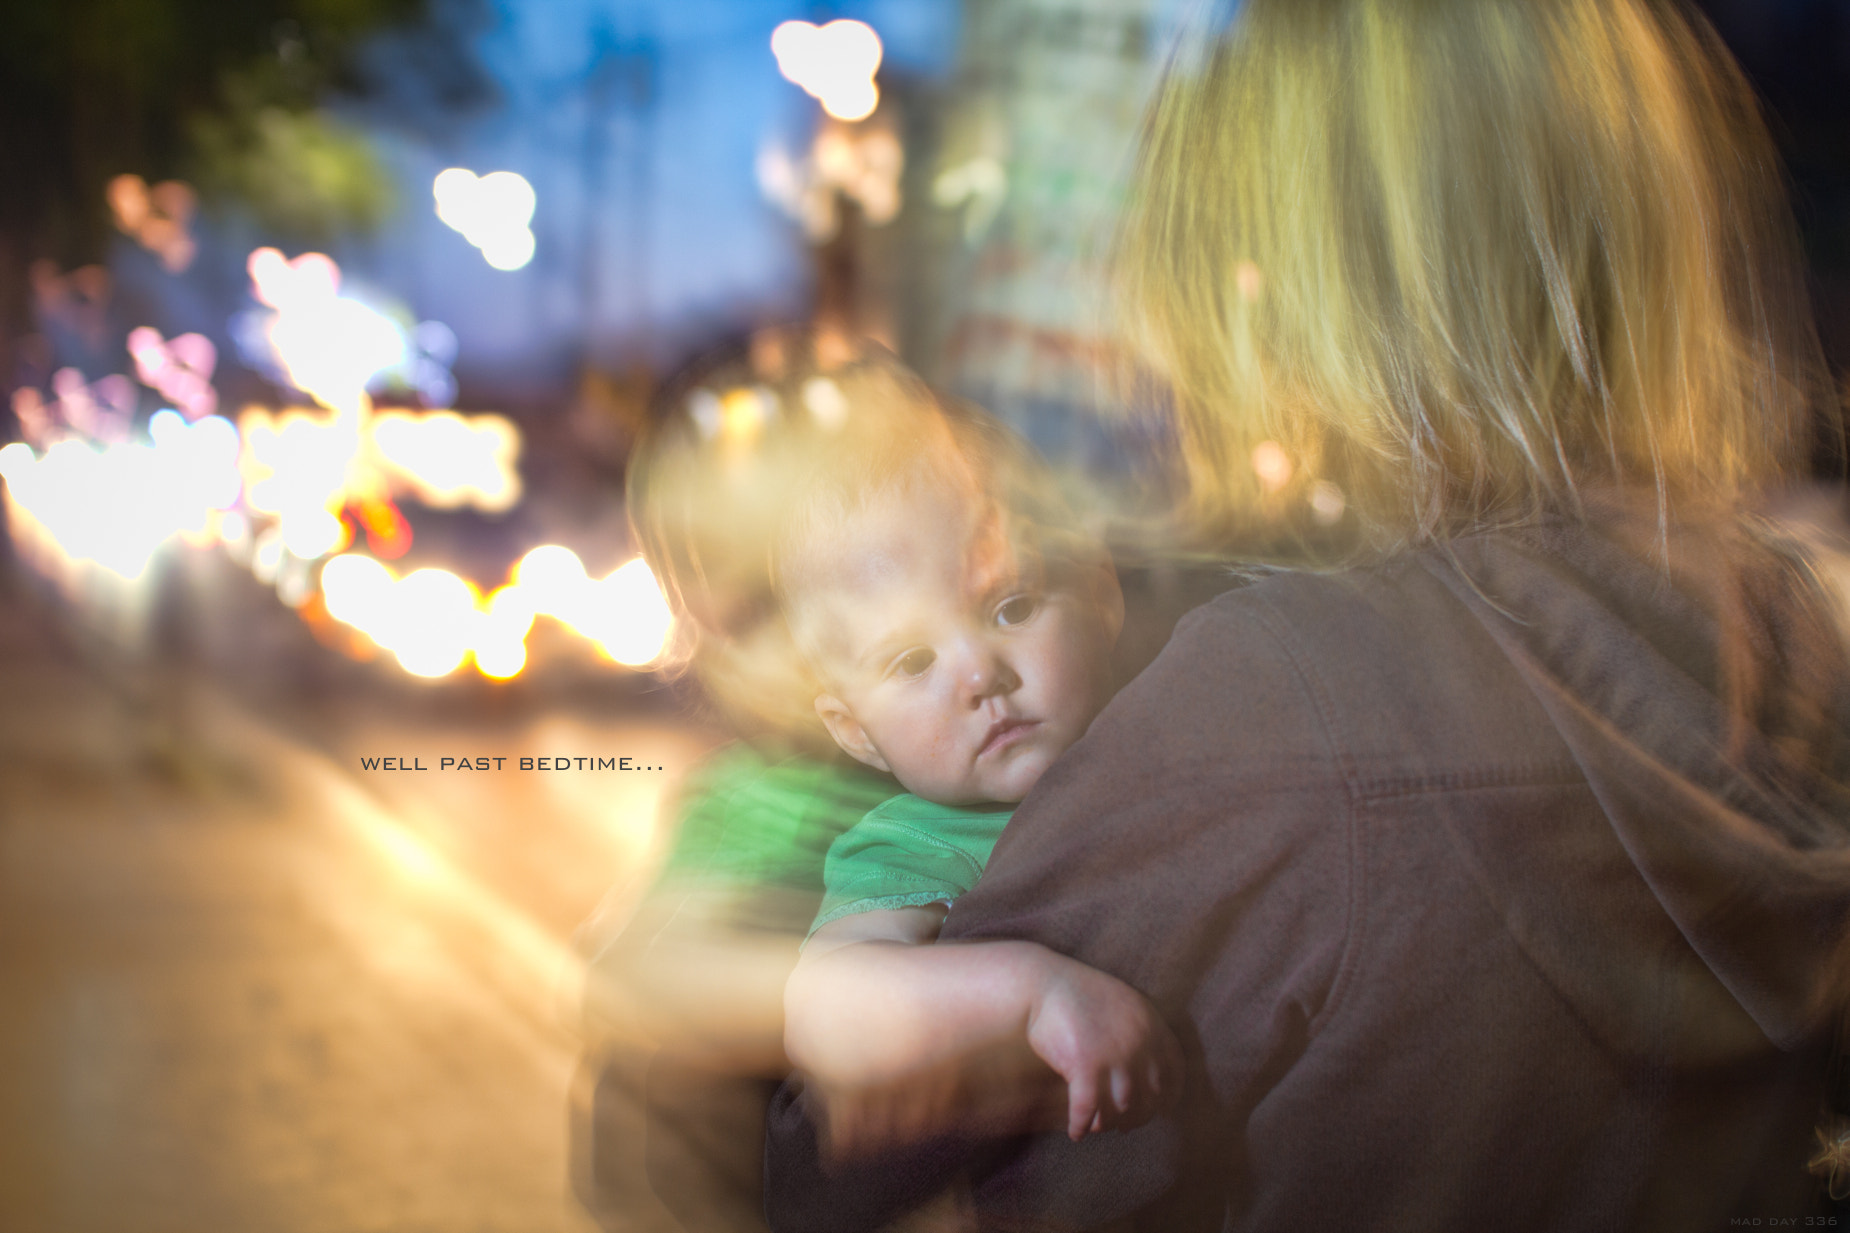 Photograph mad day 336 - well past bedtime by kristopher chandroo on 500px